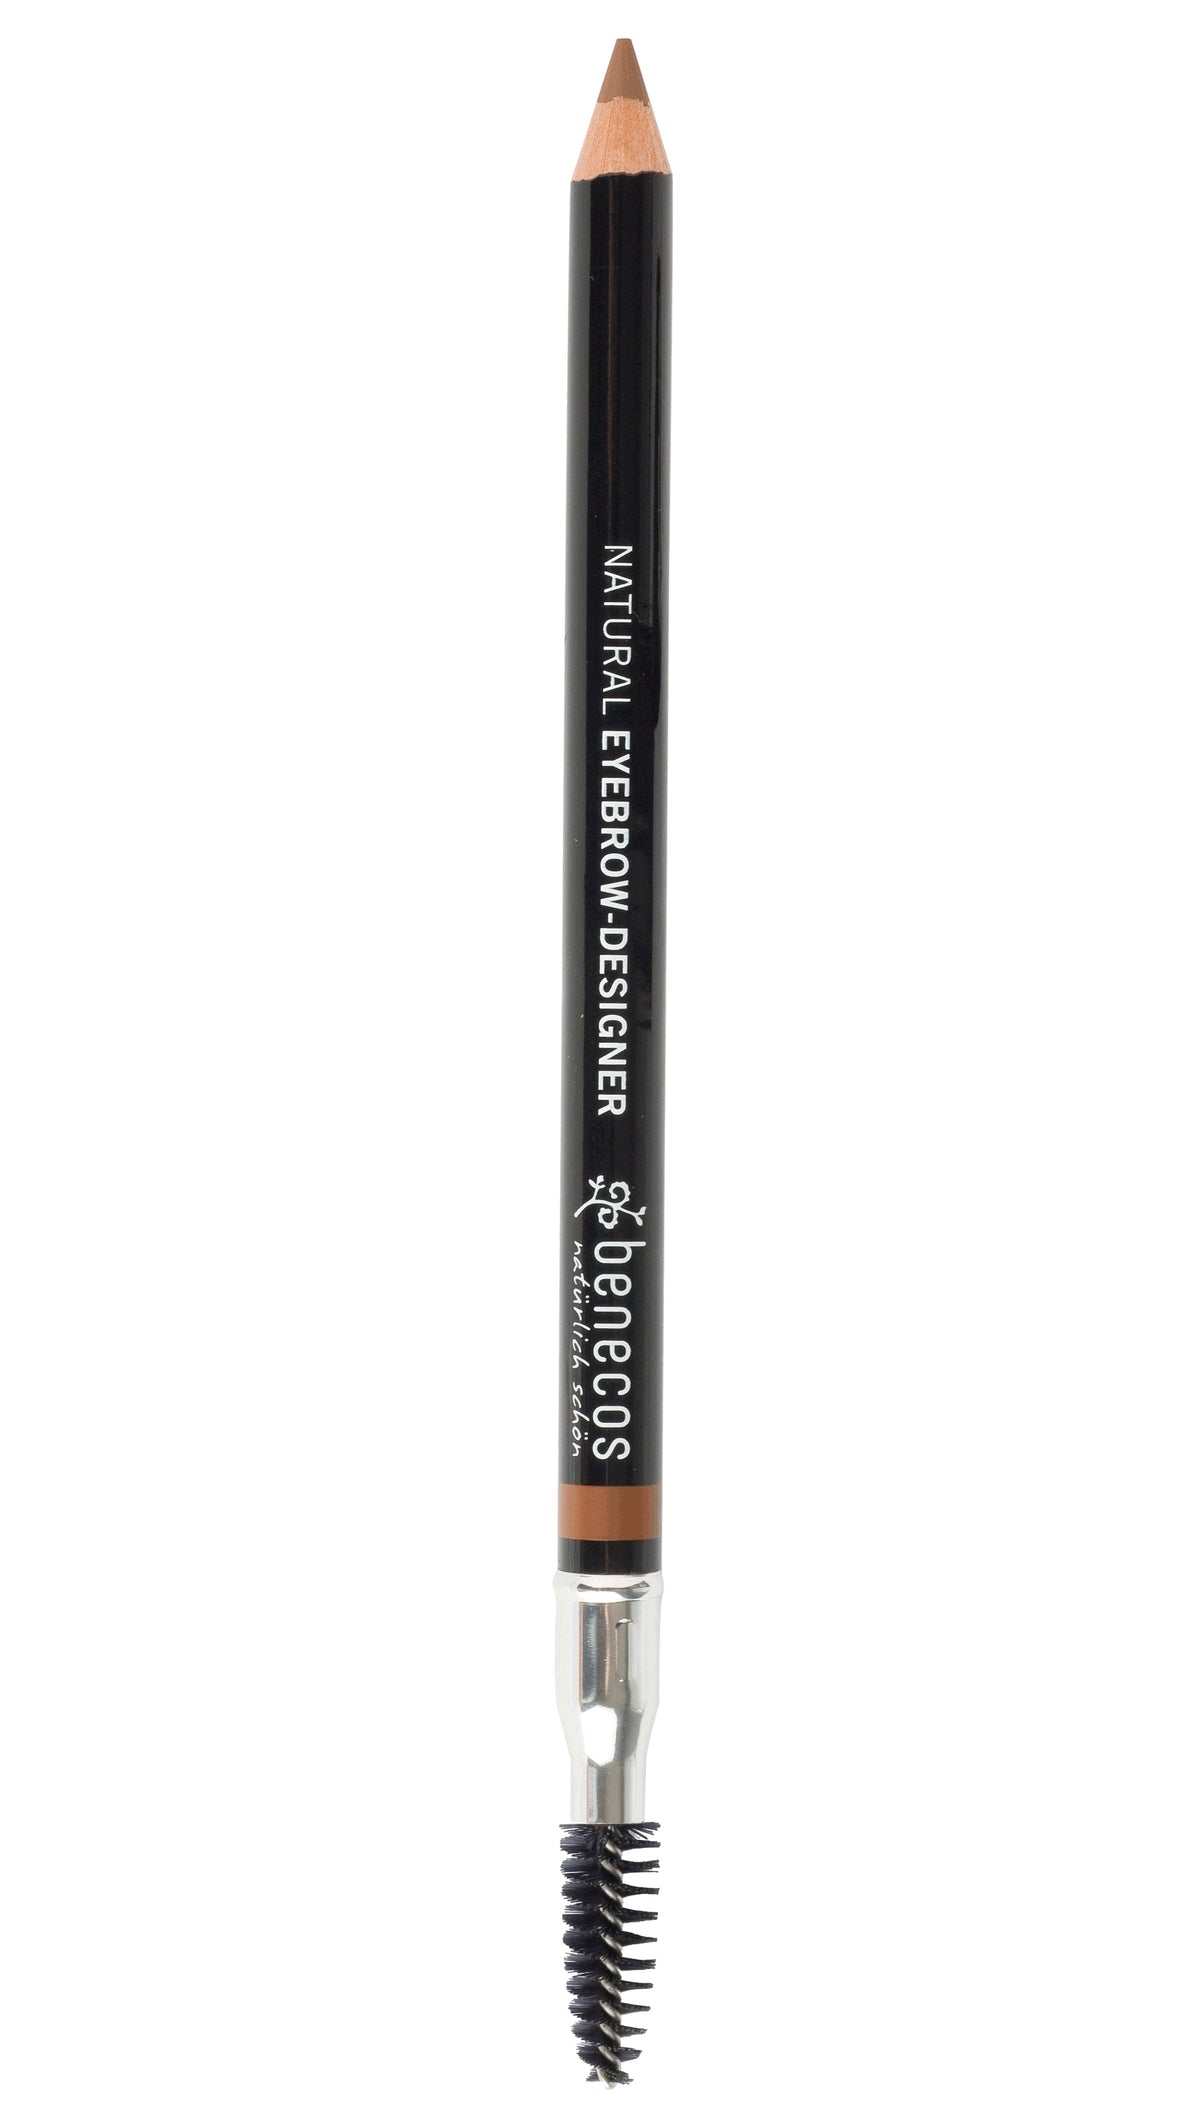 Benecos Eyebrow Designer (1.13g) More Colours +